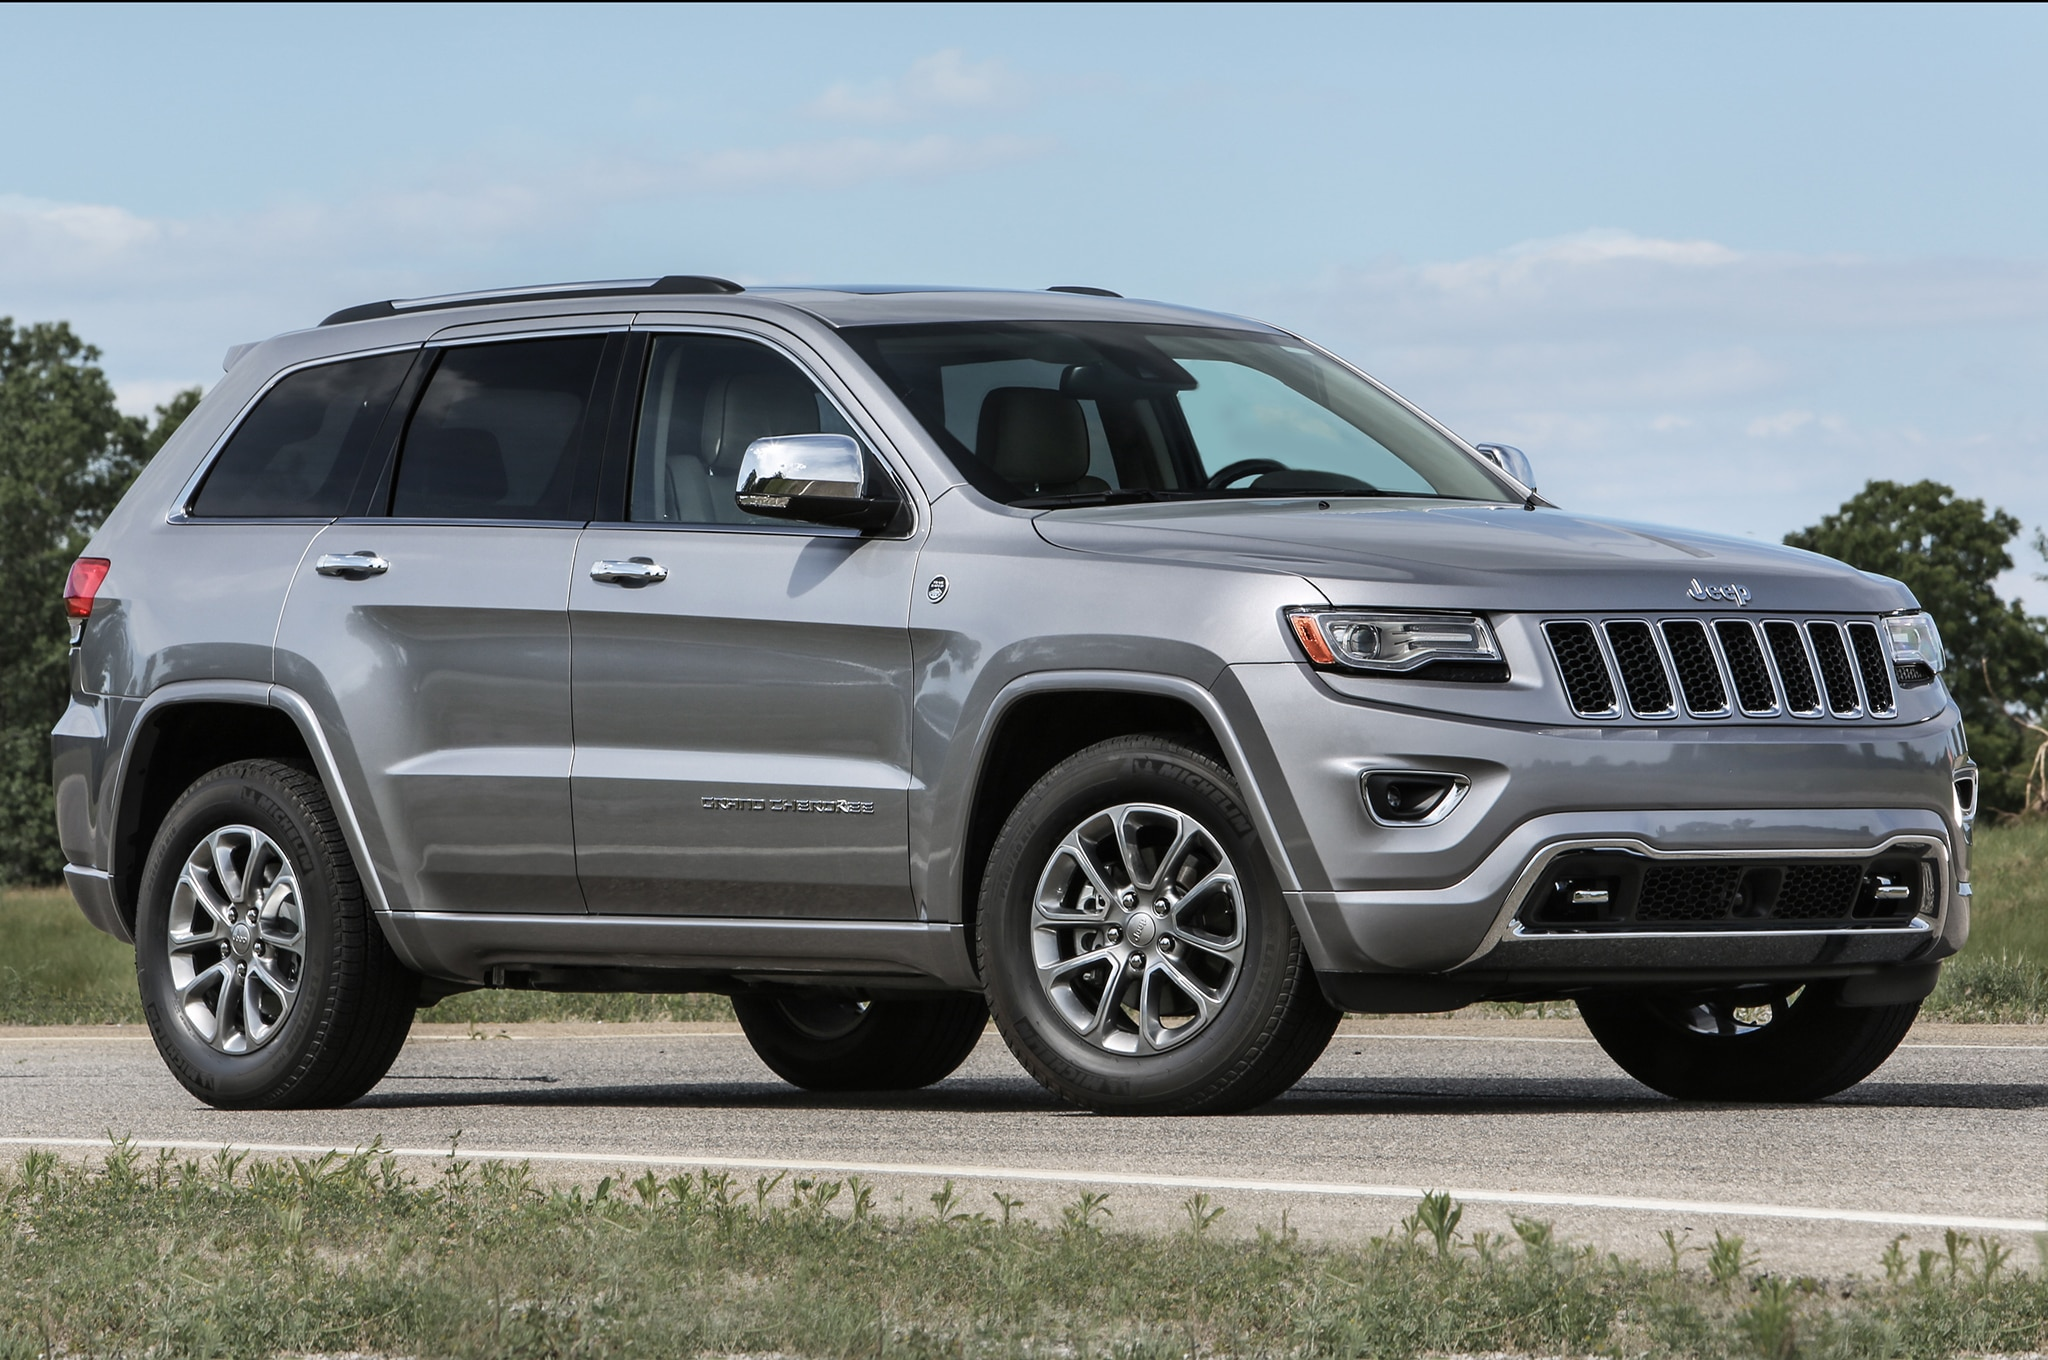 2016 jeep grand cherokee wins ideal vehicle award. Black Bedroom Furniture Sets. Home Design Ideas